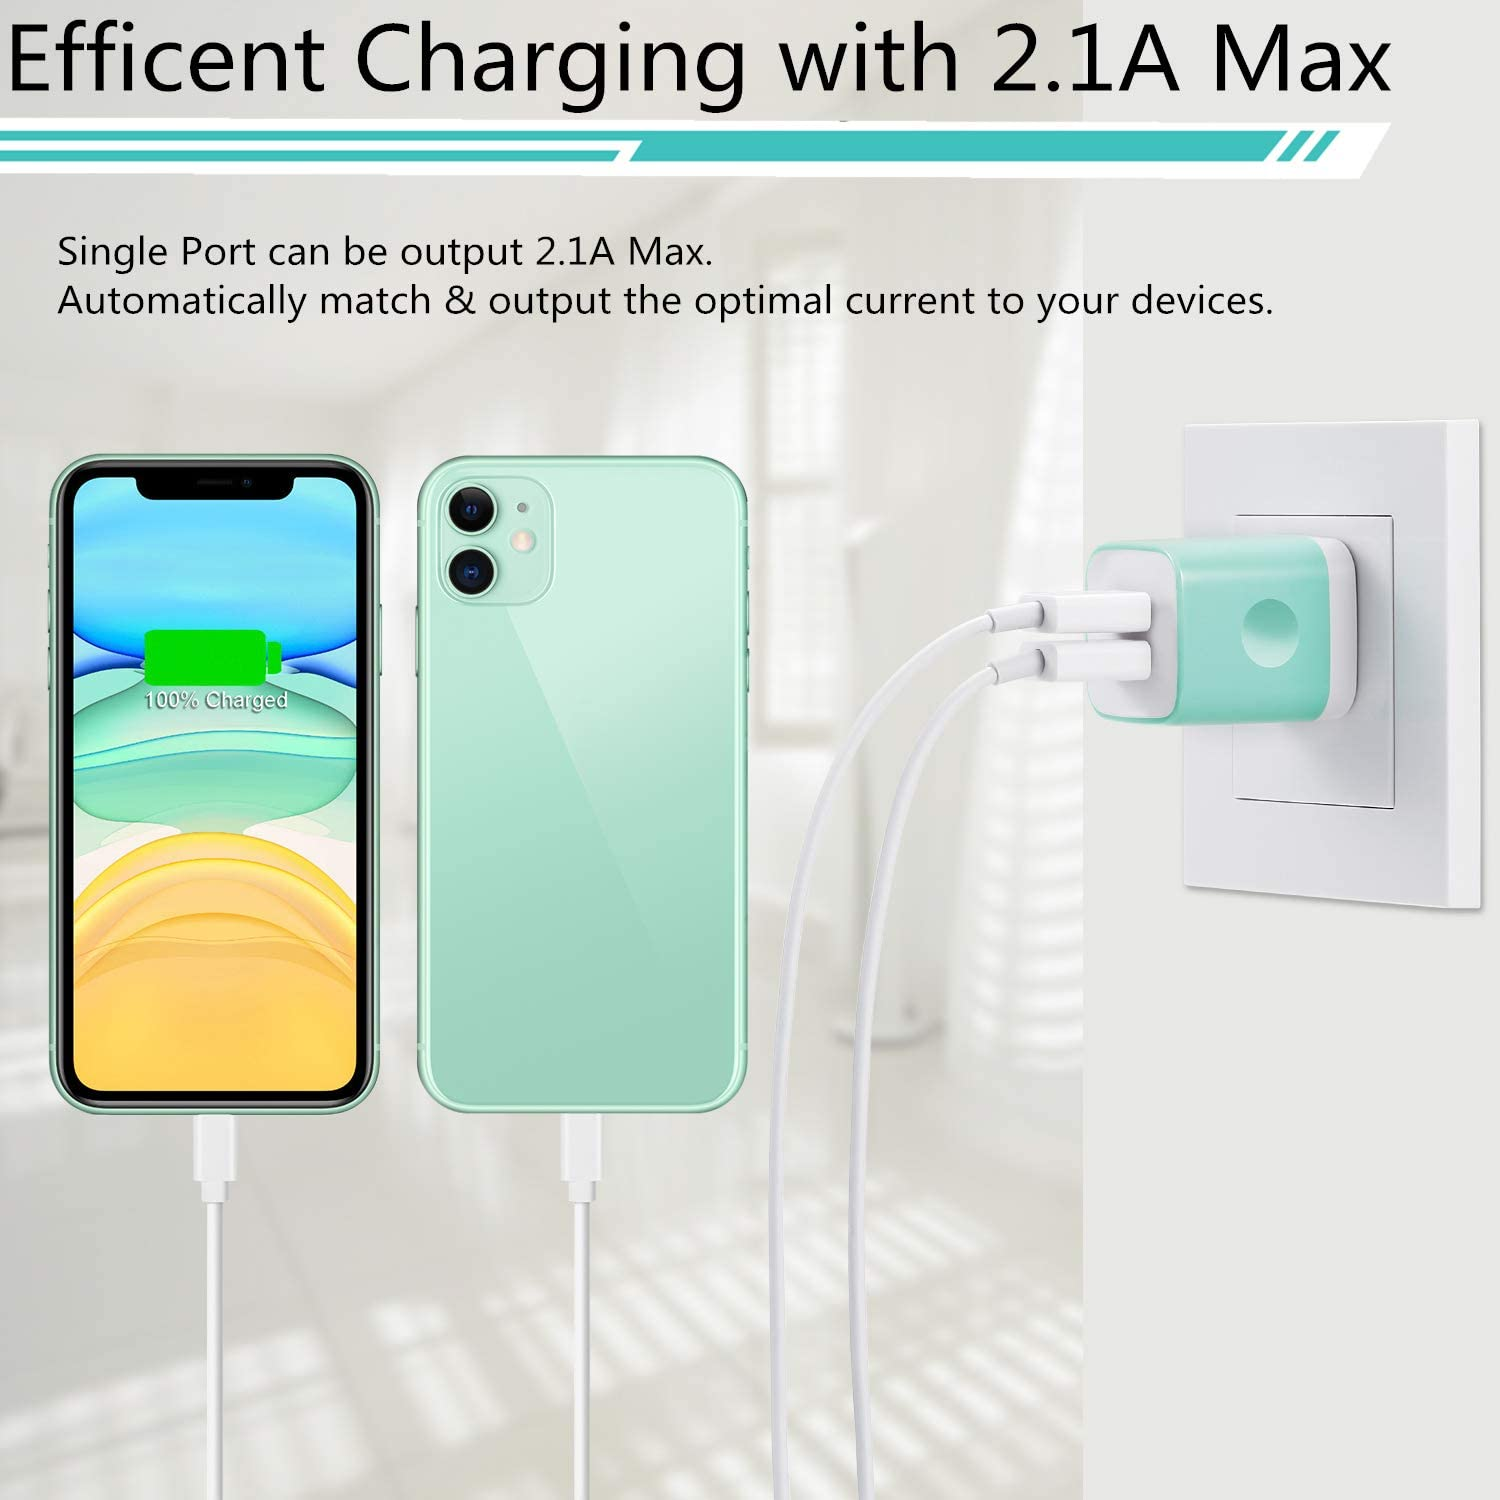 iPad Samsung Android Cell Phone LUOSIKE USB Wall Charger, 2.1A//5V Dual Port USB Plug Charger Cube Charging Block Power Adapter Compatible with iPhone 11//Xs//XR//X//8//7//6//6S Plus//SE//5S LG 3-Pack